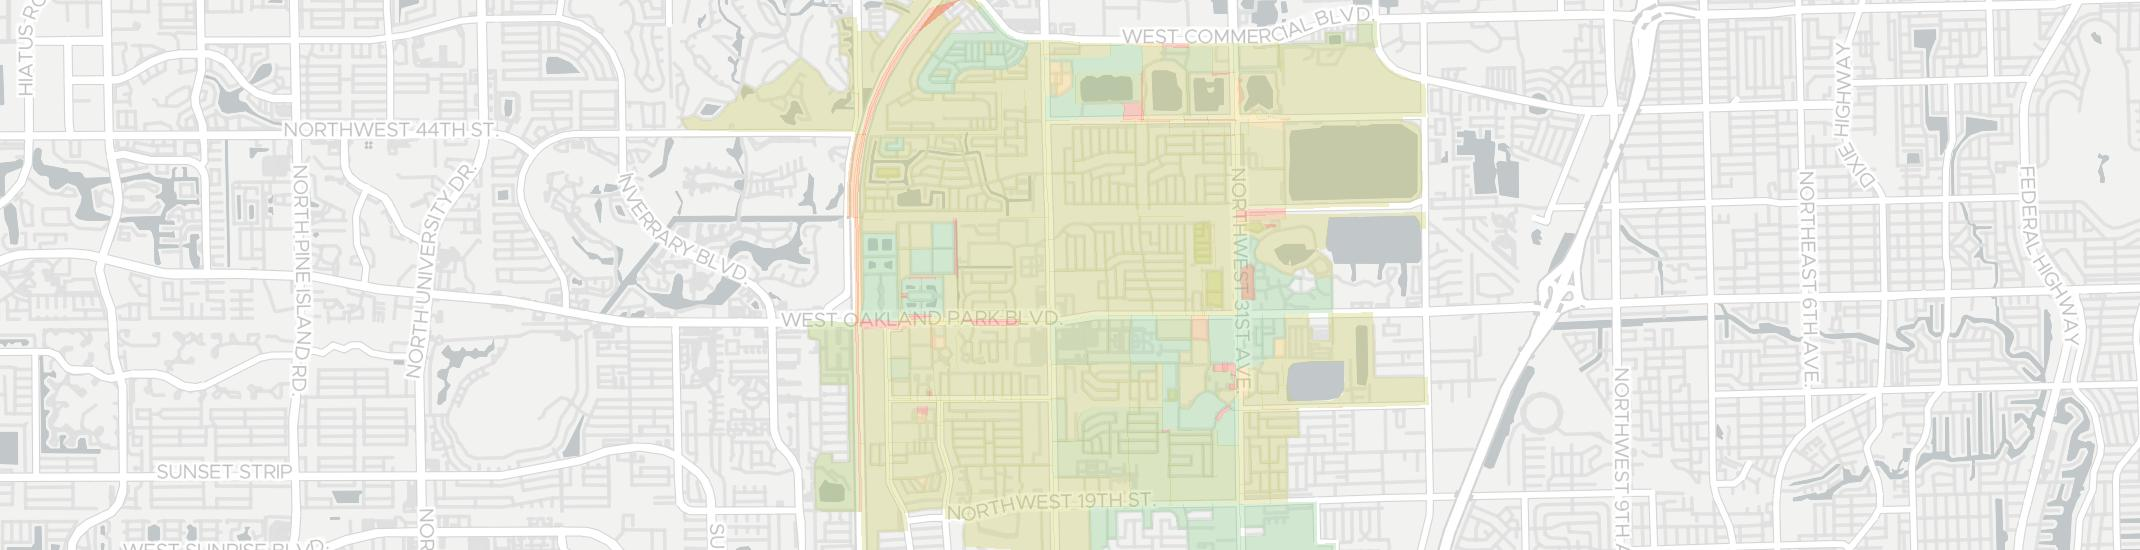 Lauderdale Lakes Internet Competition Map. Click for interactive map.